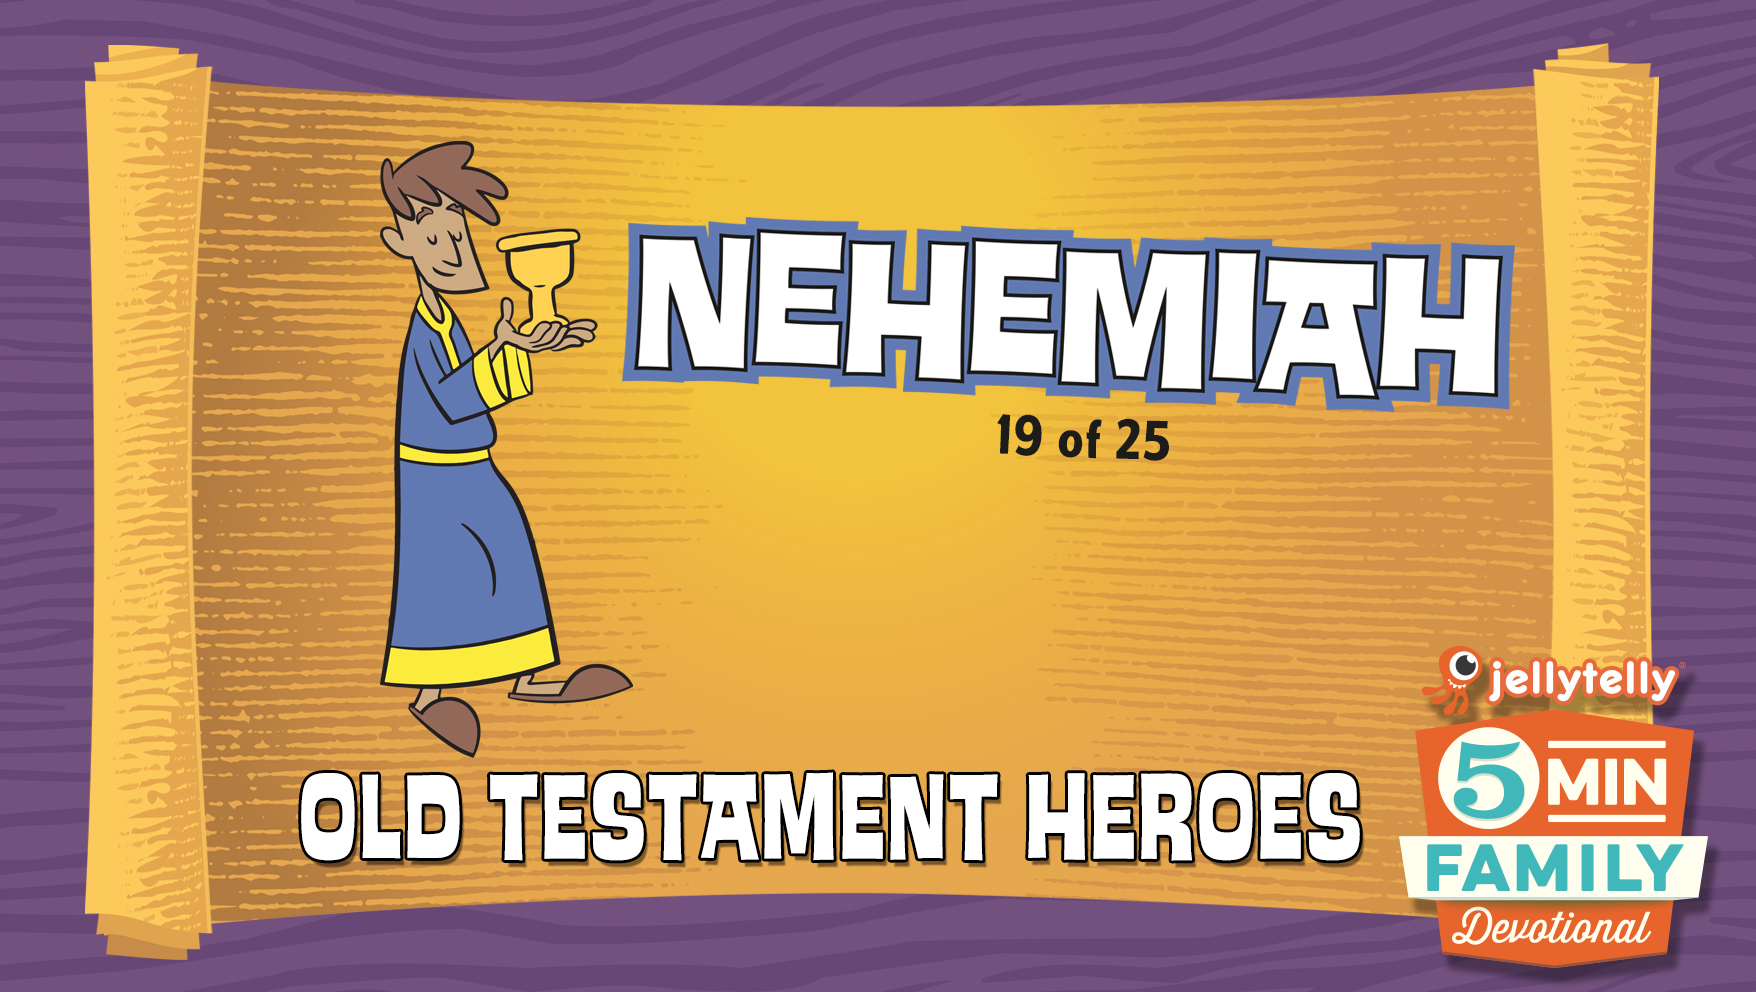 Nehemiah: Old Testament Heroes - 5 Minute Family Devotional